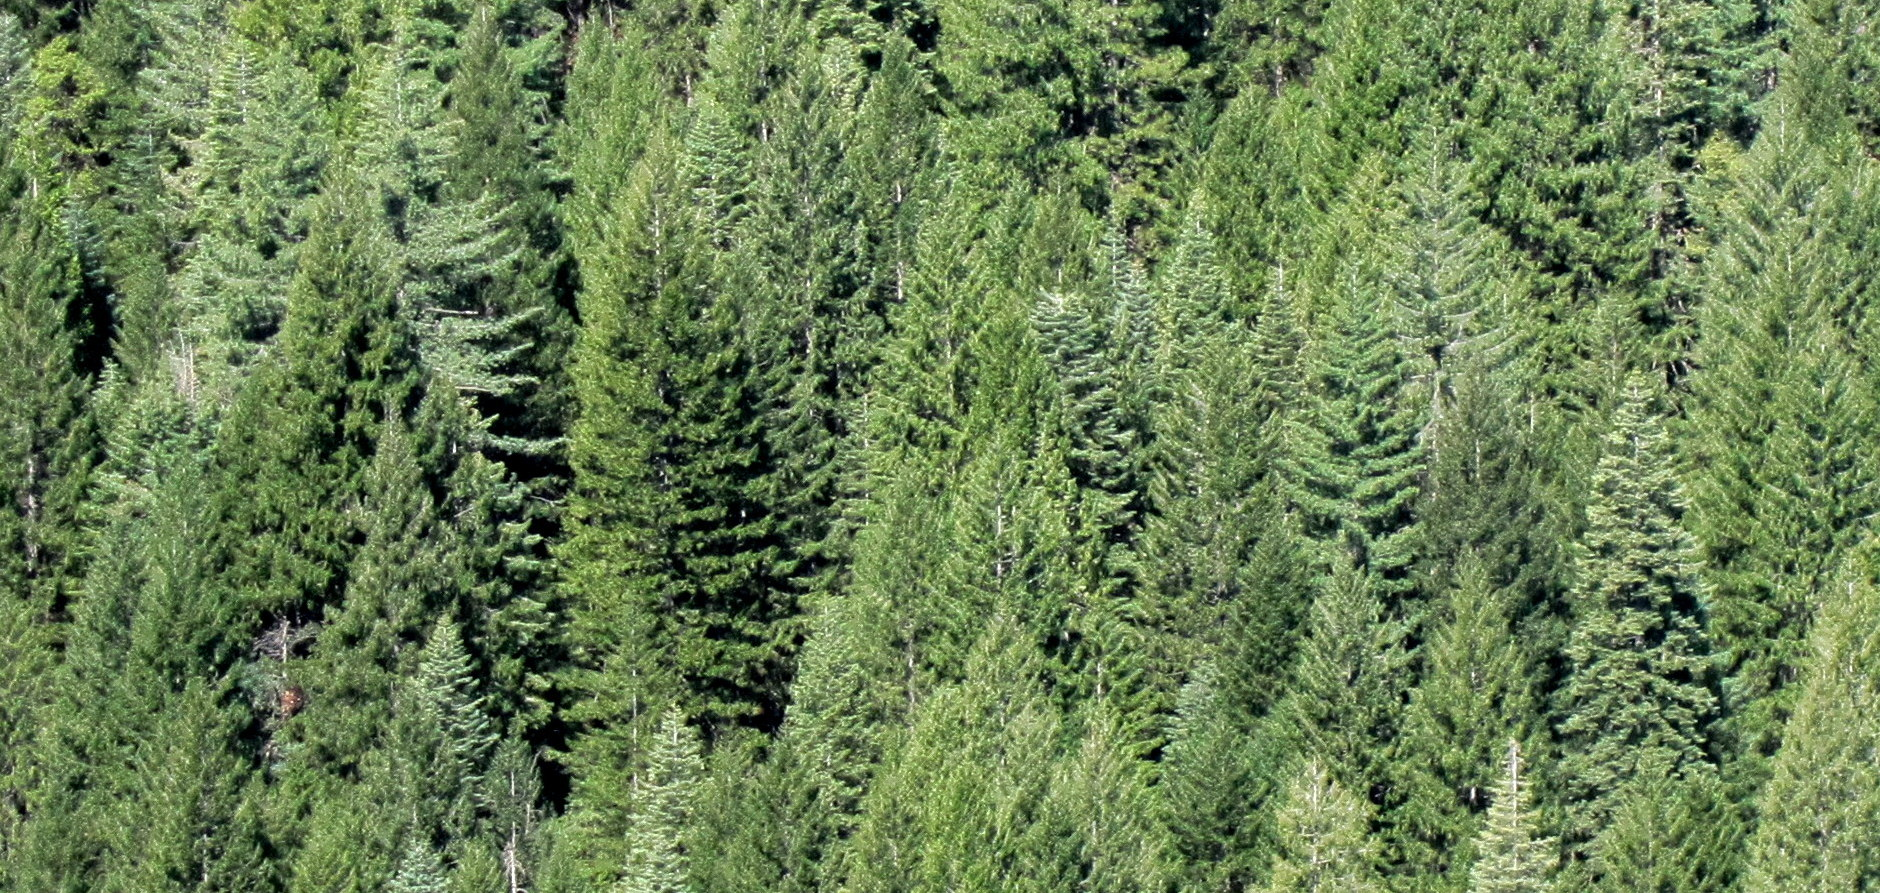 Blog Changing Forests Understanding And Responding To The Christmas Tree Light Wiring Diagram Caroldoey What Is Likelihood That Two Adjacent Trees Of Same Species Share A Parent Addressing This Question An Essential First Step In My Work